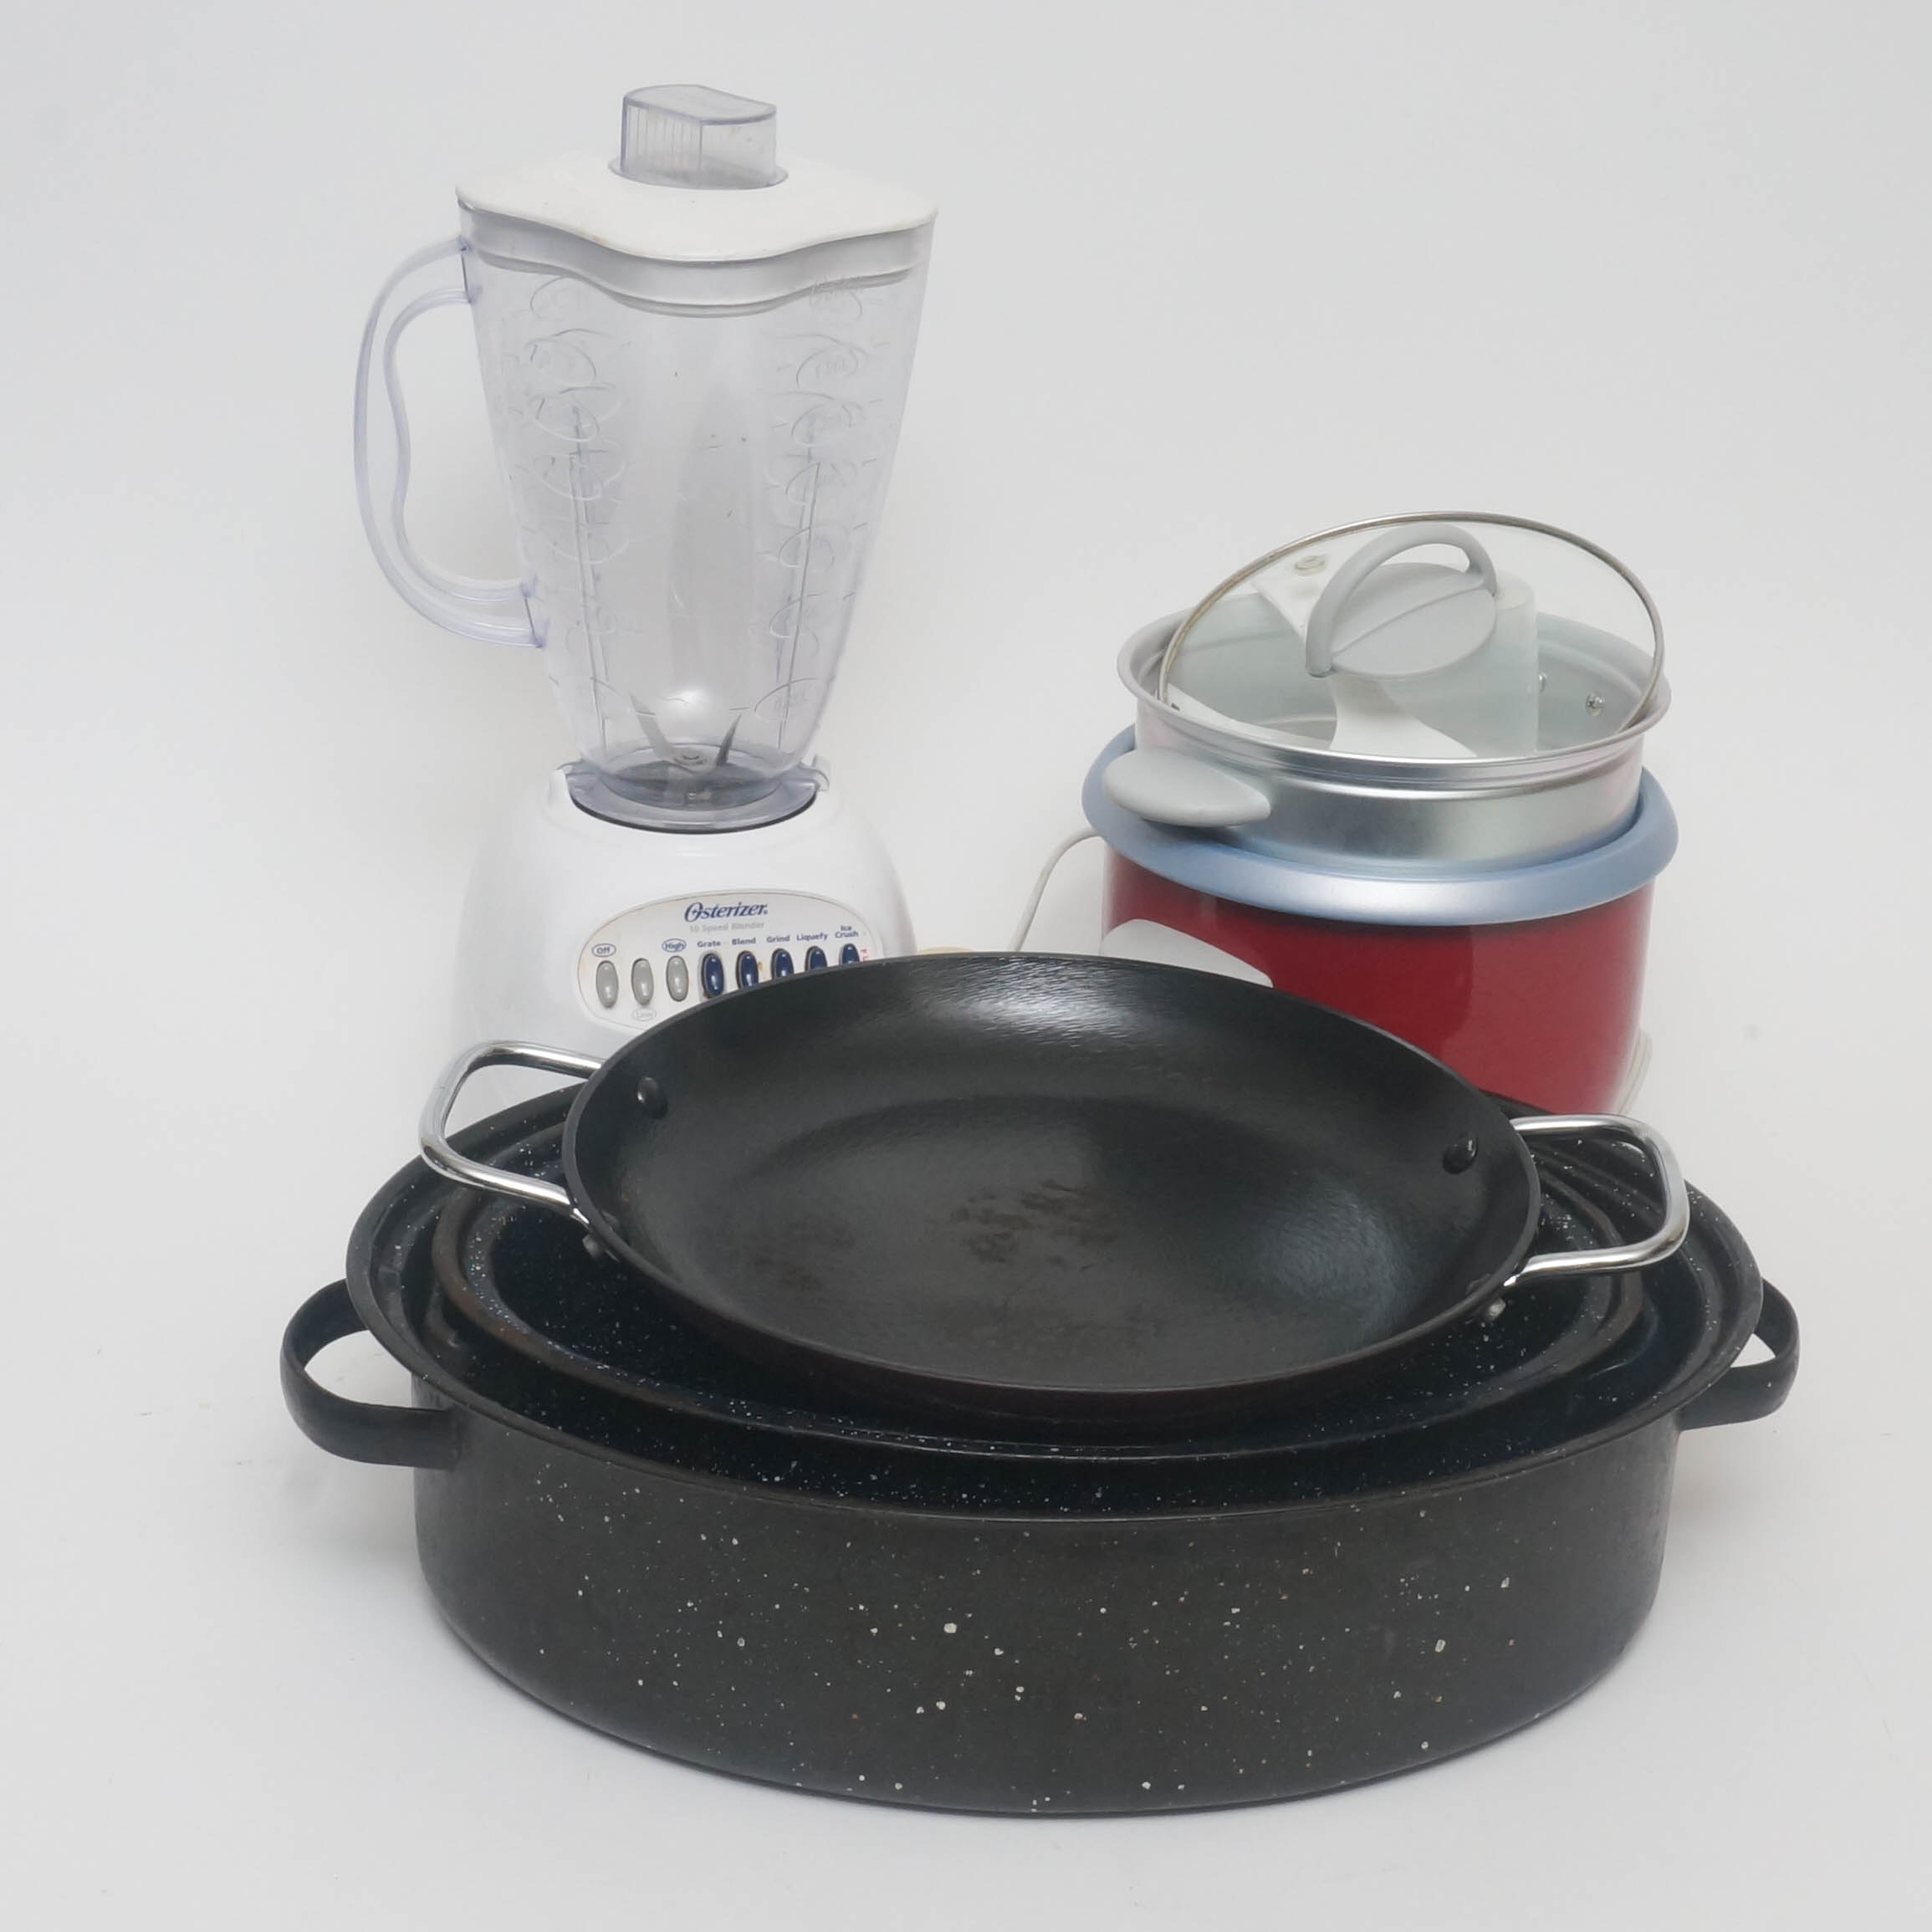 Assortment of Kitchen Appliances and Cookware